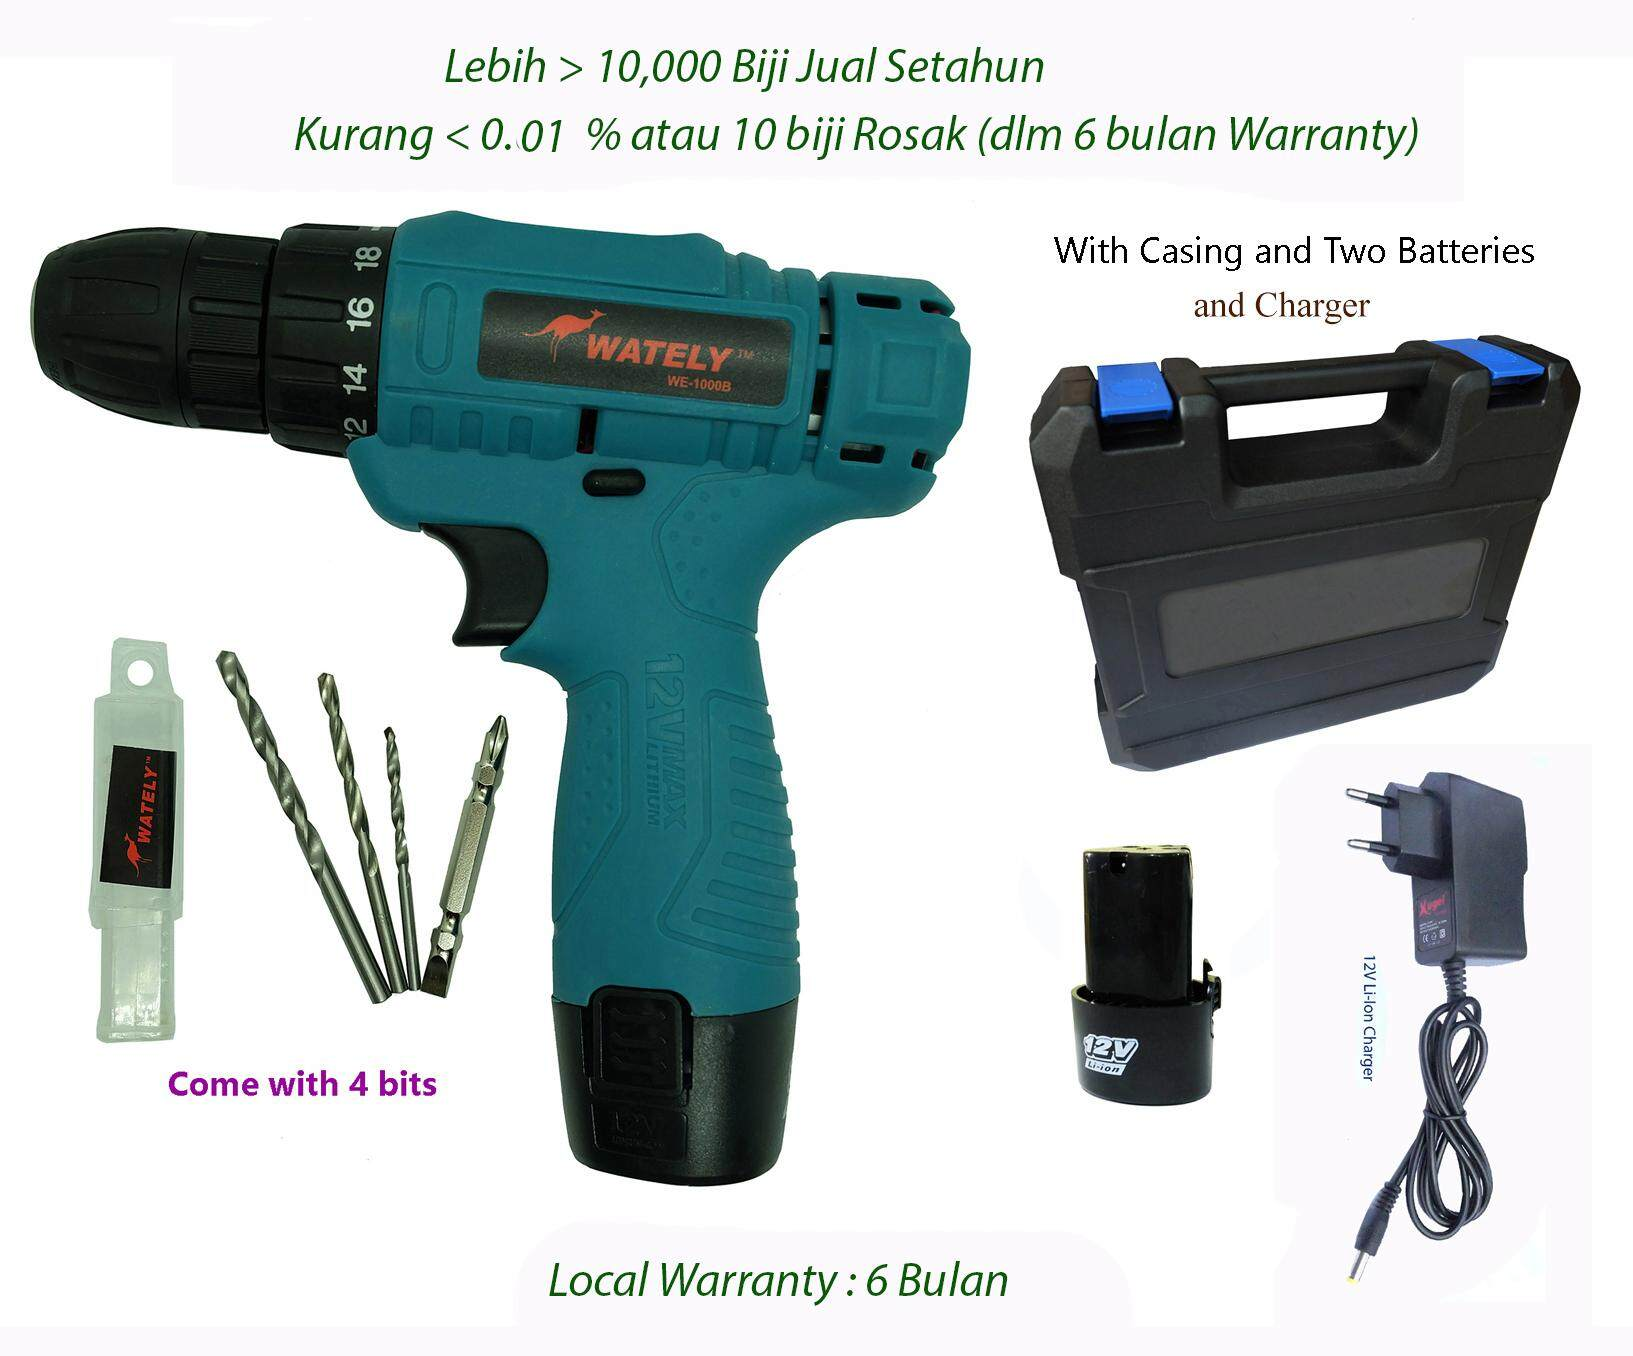 Wately WE1000 Battery Cordless Drill 12V with Two Li-Ion Batteries c/w  Casing and Bit Set